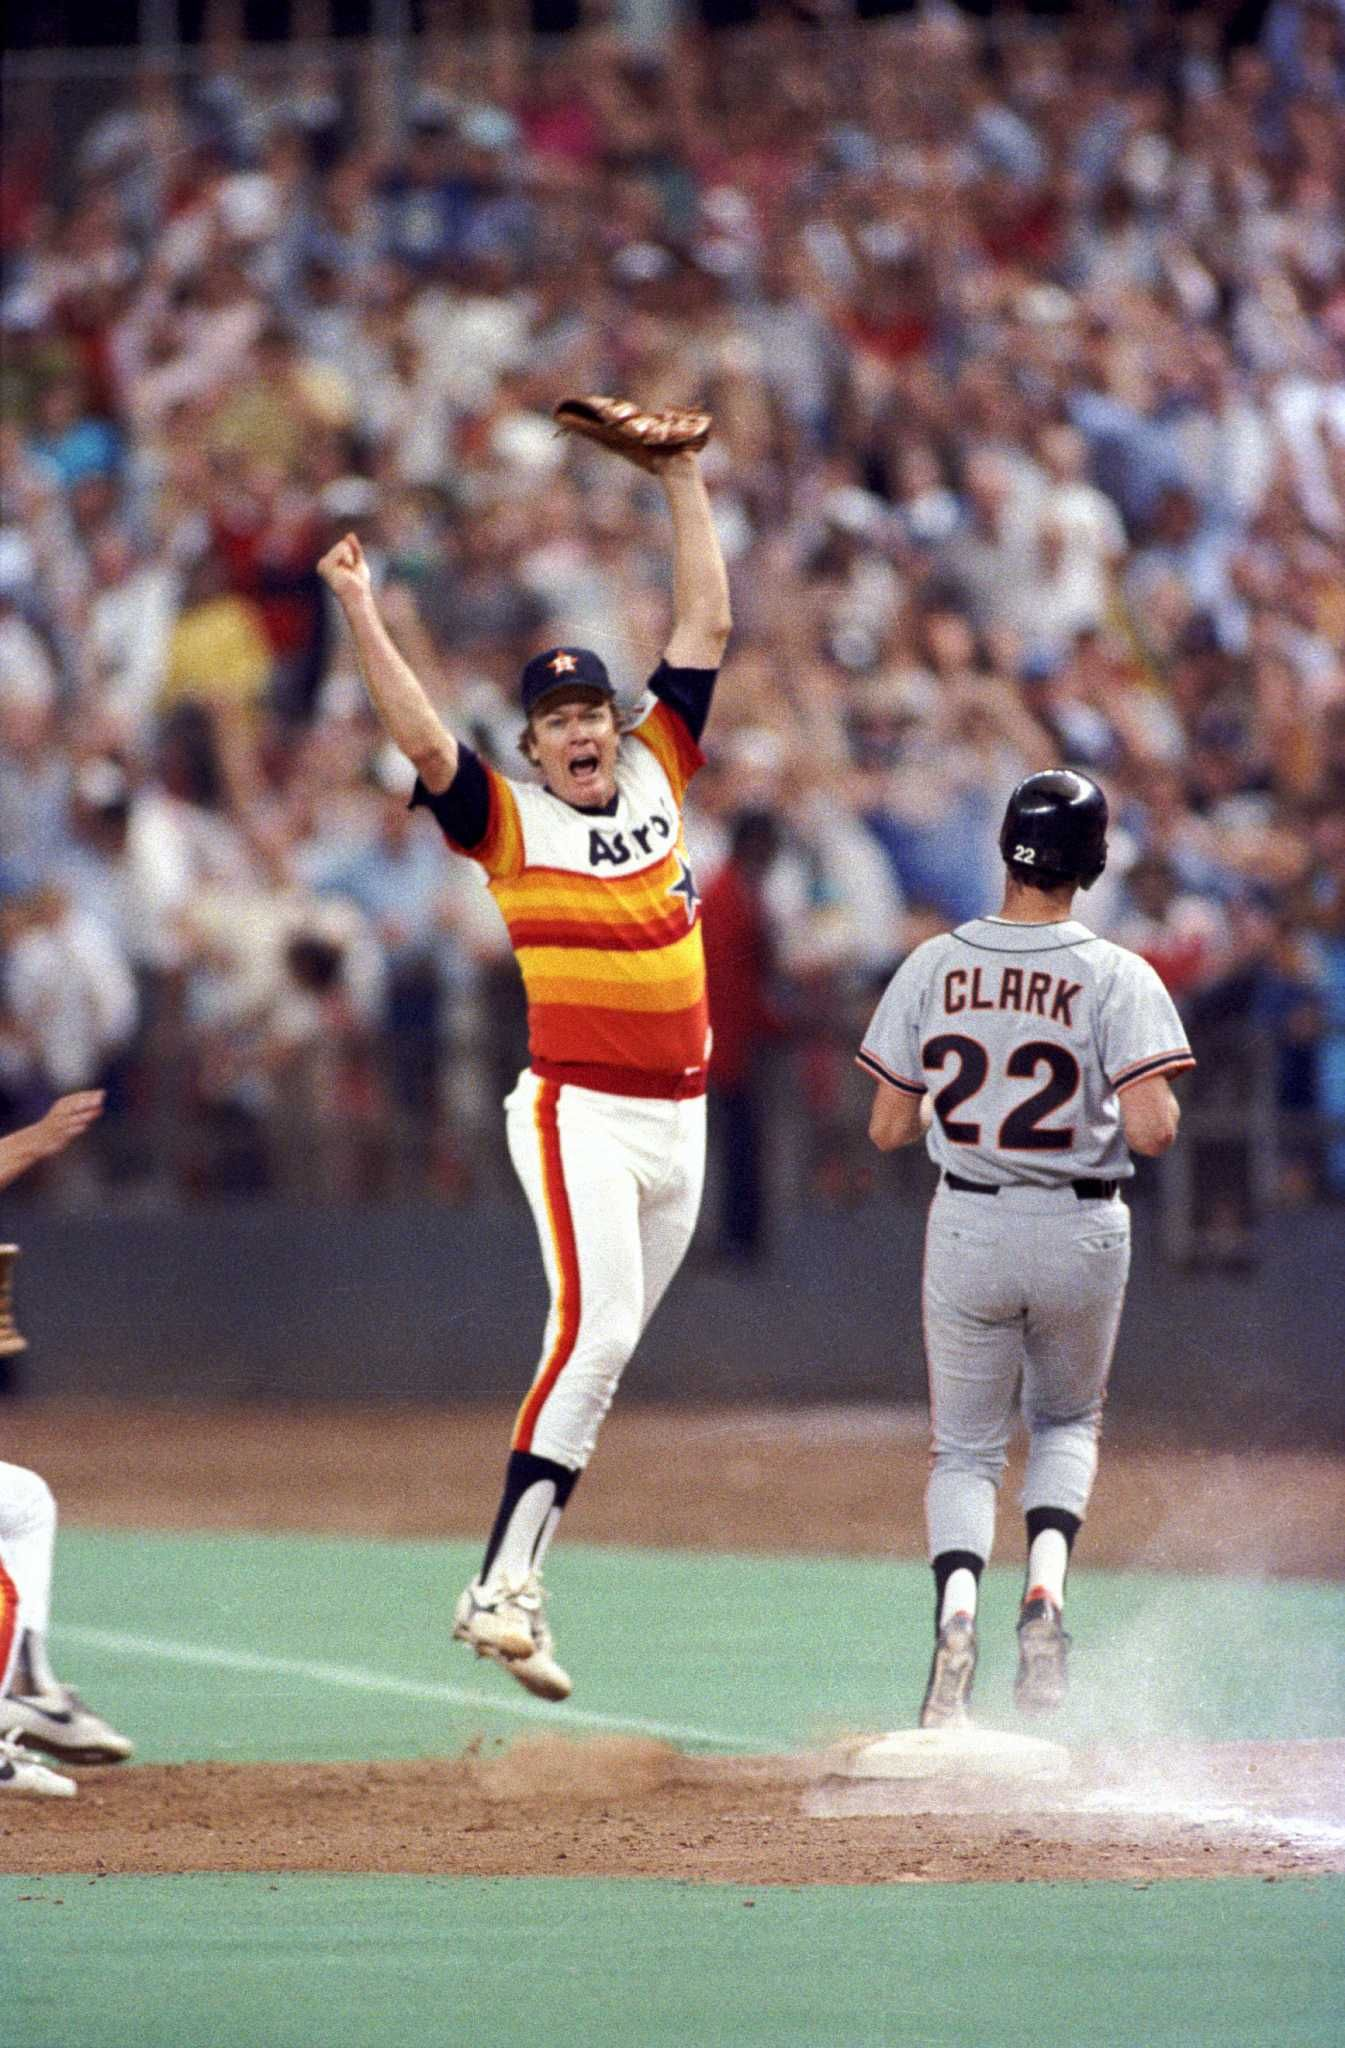 One Of The Great All Time Moments In Astros History Mike Scott Pitches A No Hitter As The Stros Clinch With Images Houston Astros Baseball Astros Baseball Texas Sports